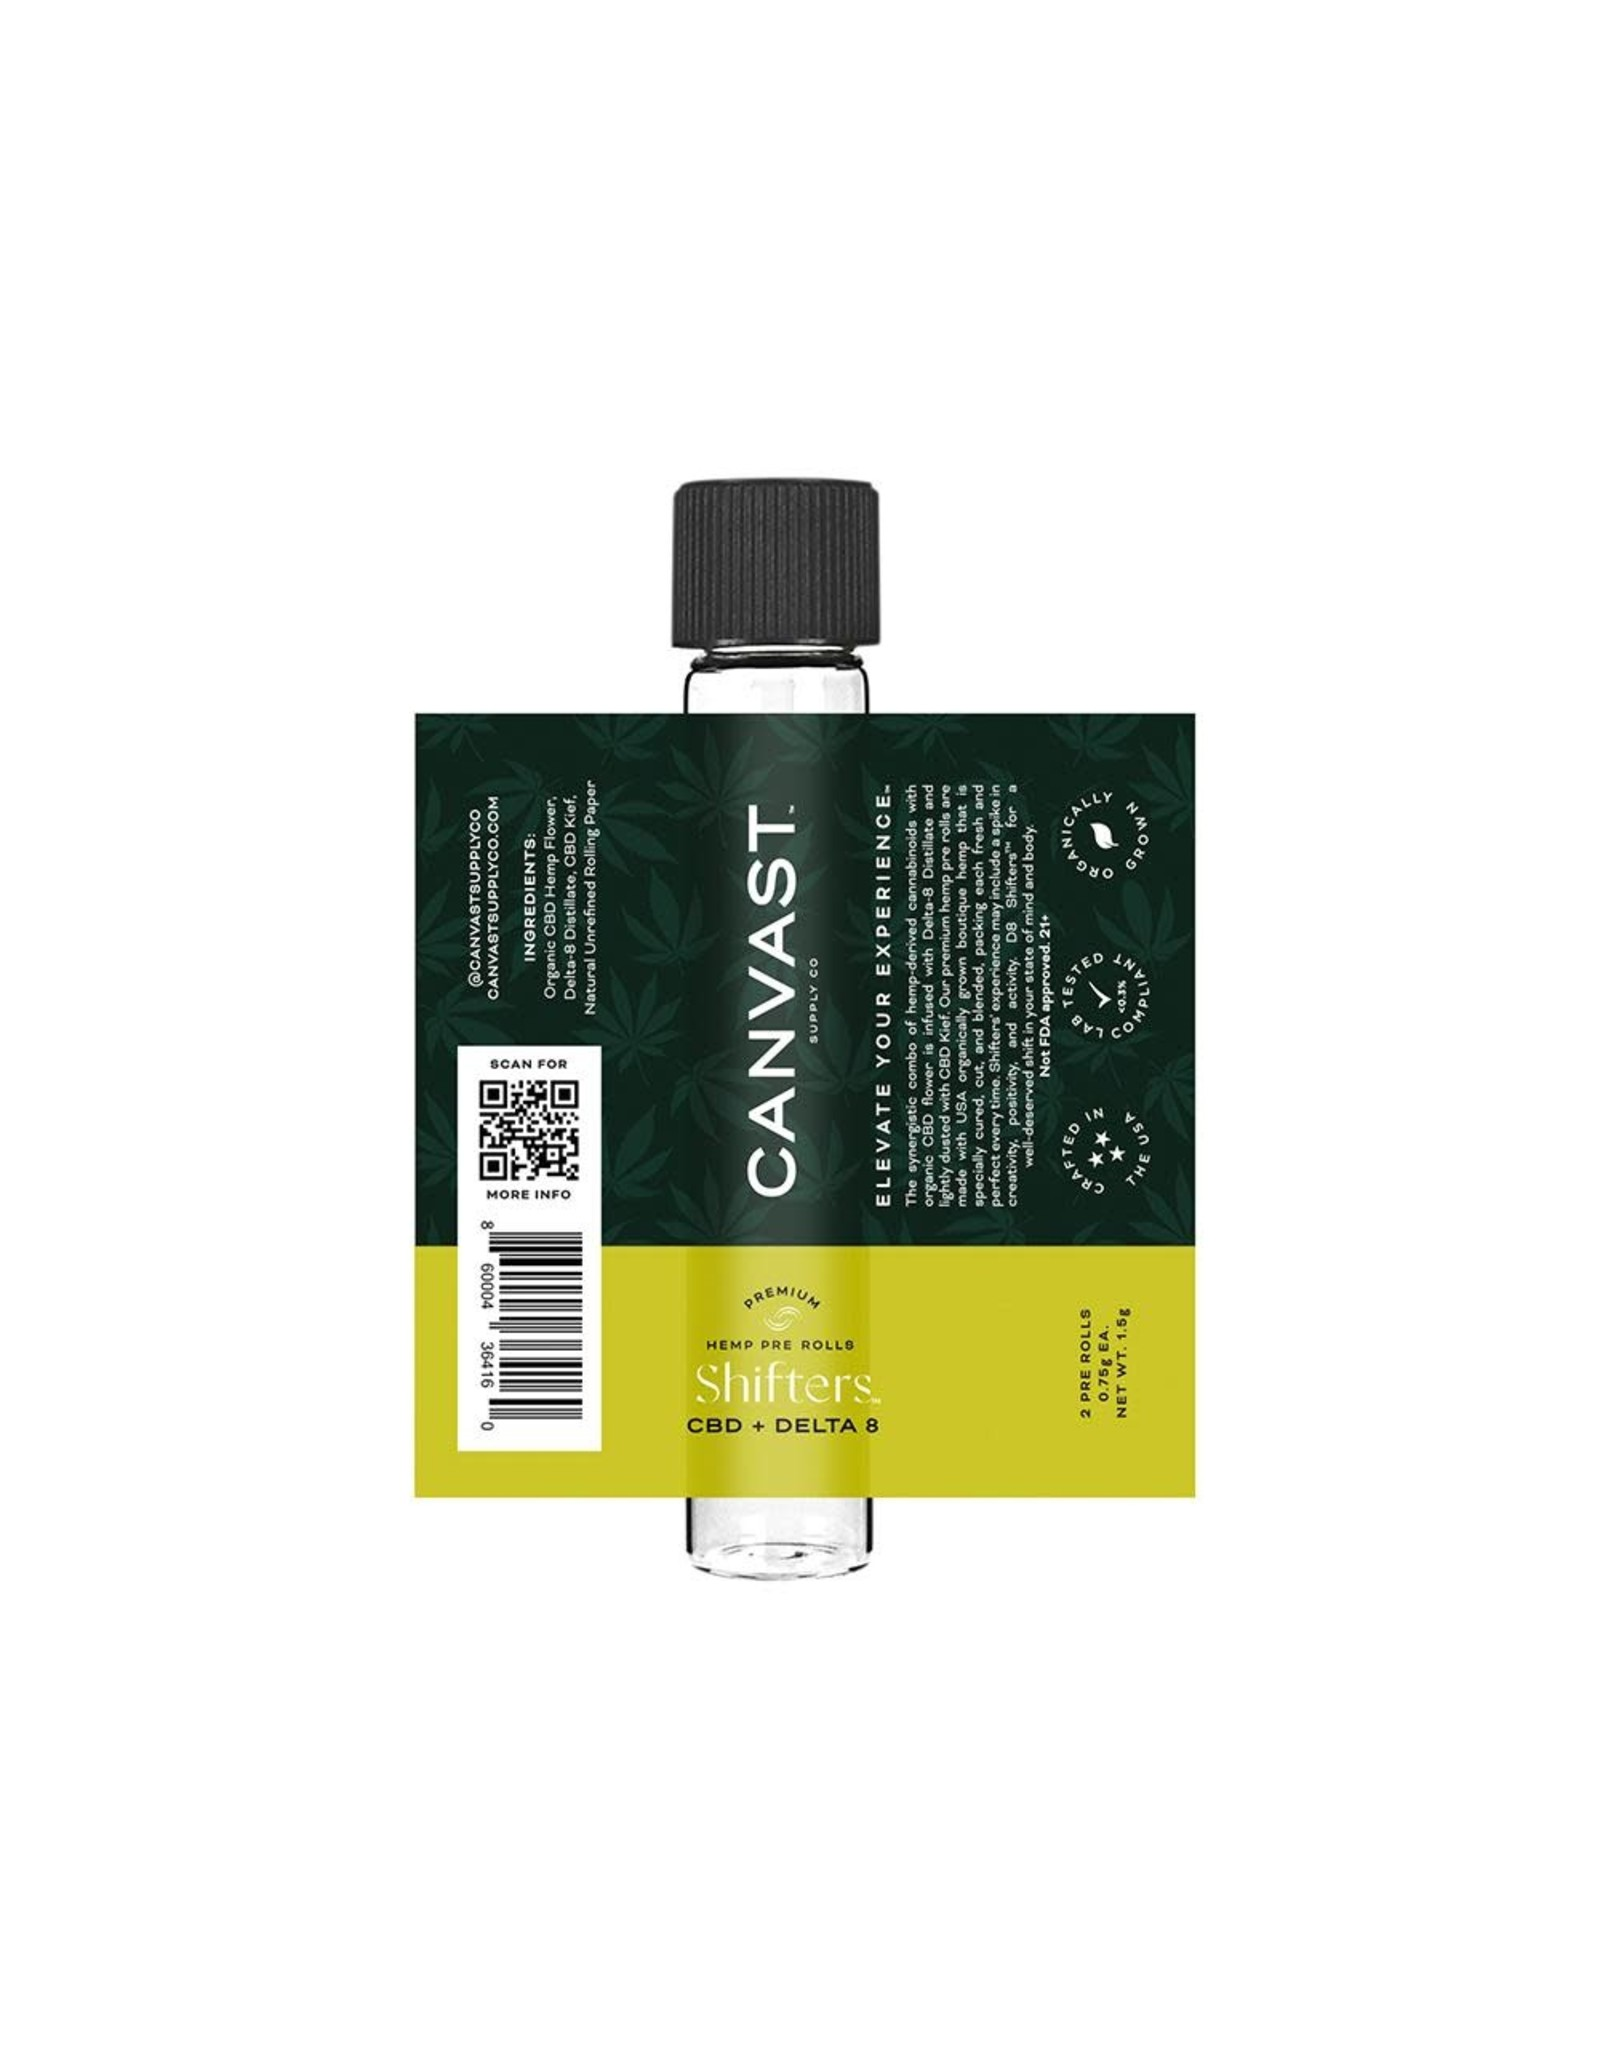 Canvast Canvast Delta 8 + CBD  Pre-Roll  1.5gr 2 count